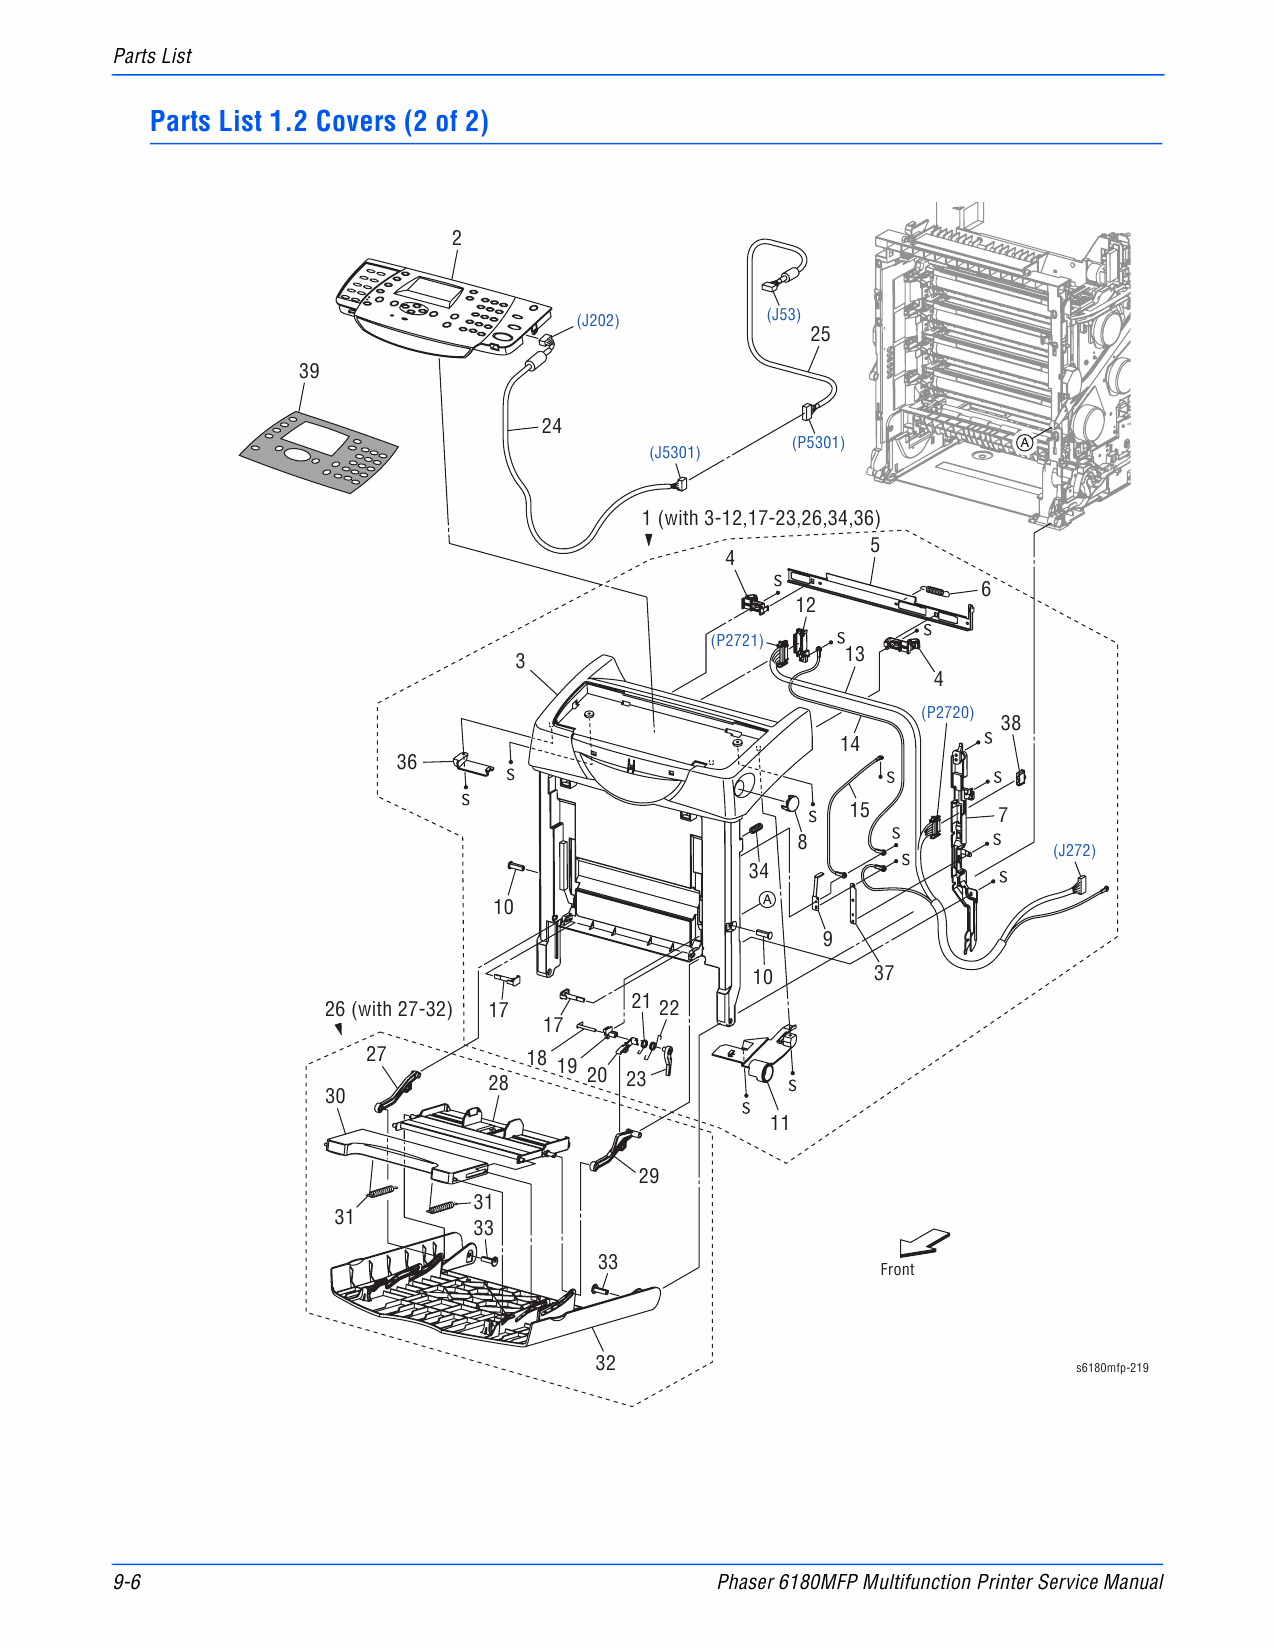 Xerox Phaser 6180-MFP Parts List and Service Manual